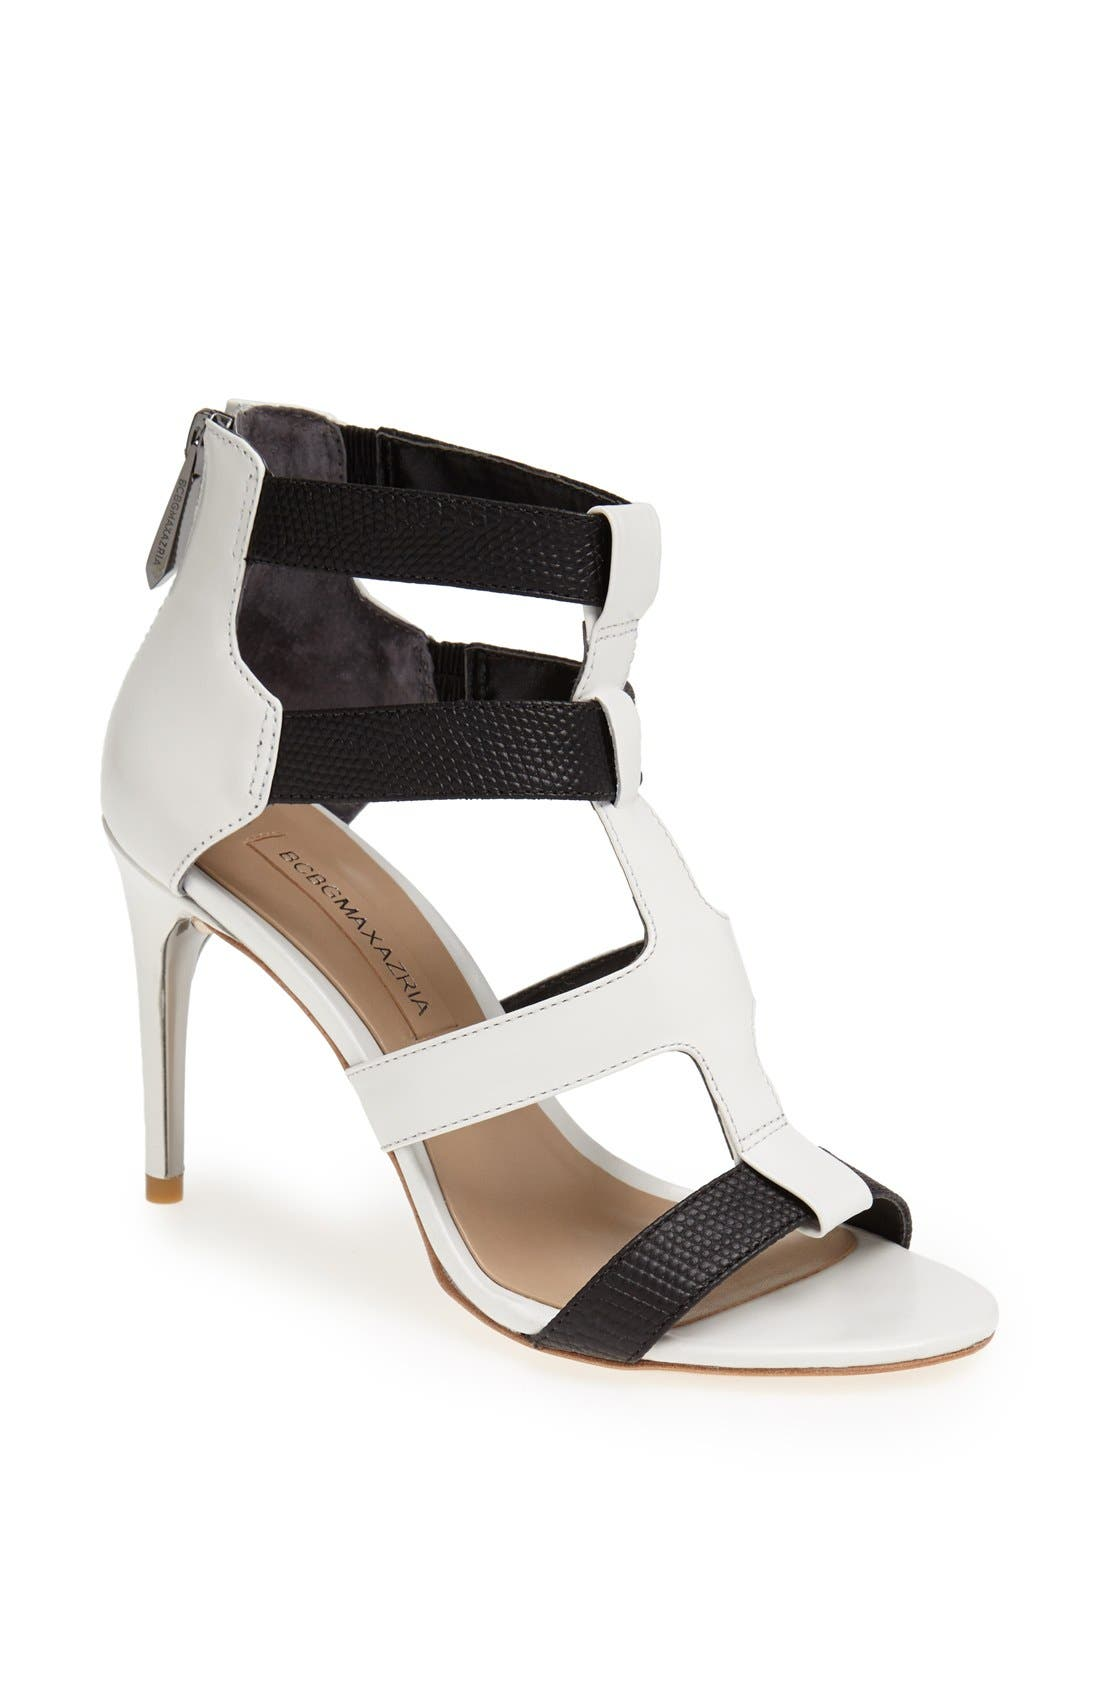 Alternate Image 1 Selected - BCBGMAXAZRIA 'Palmer' Cage Sandal